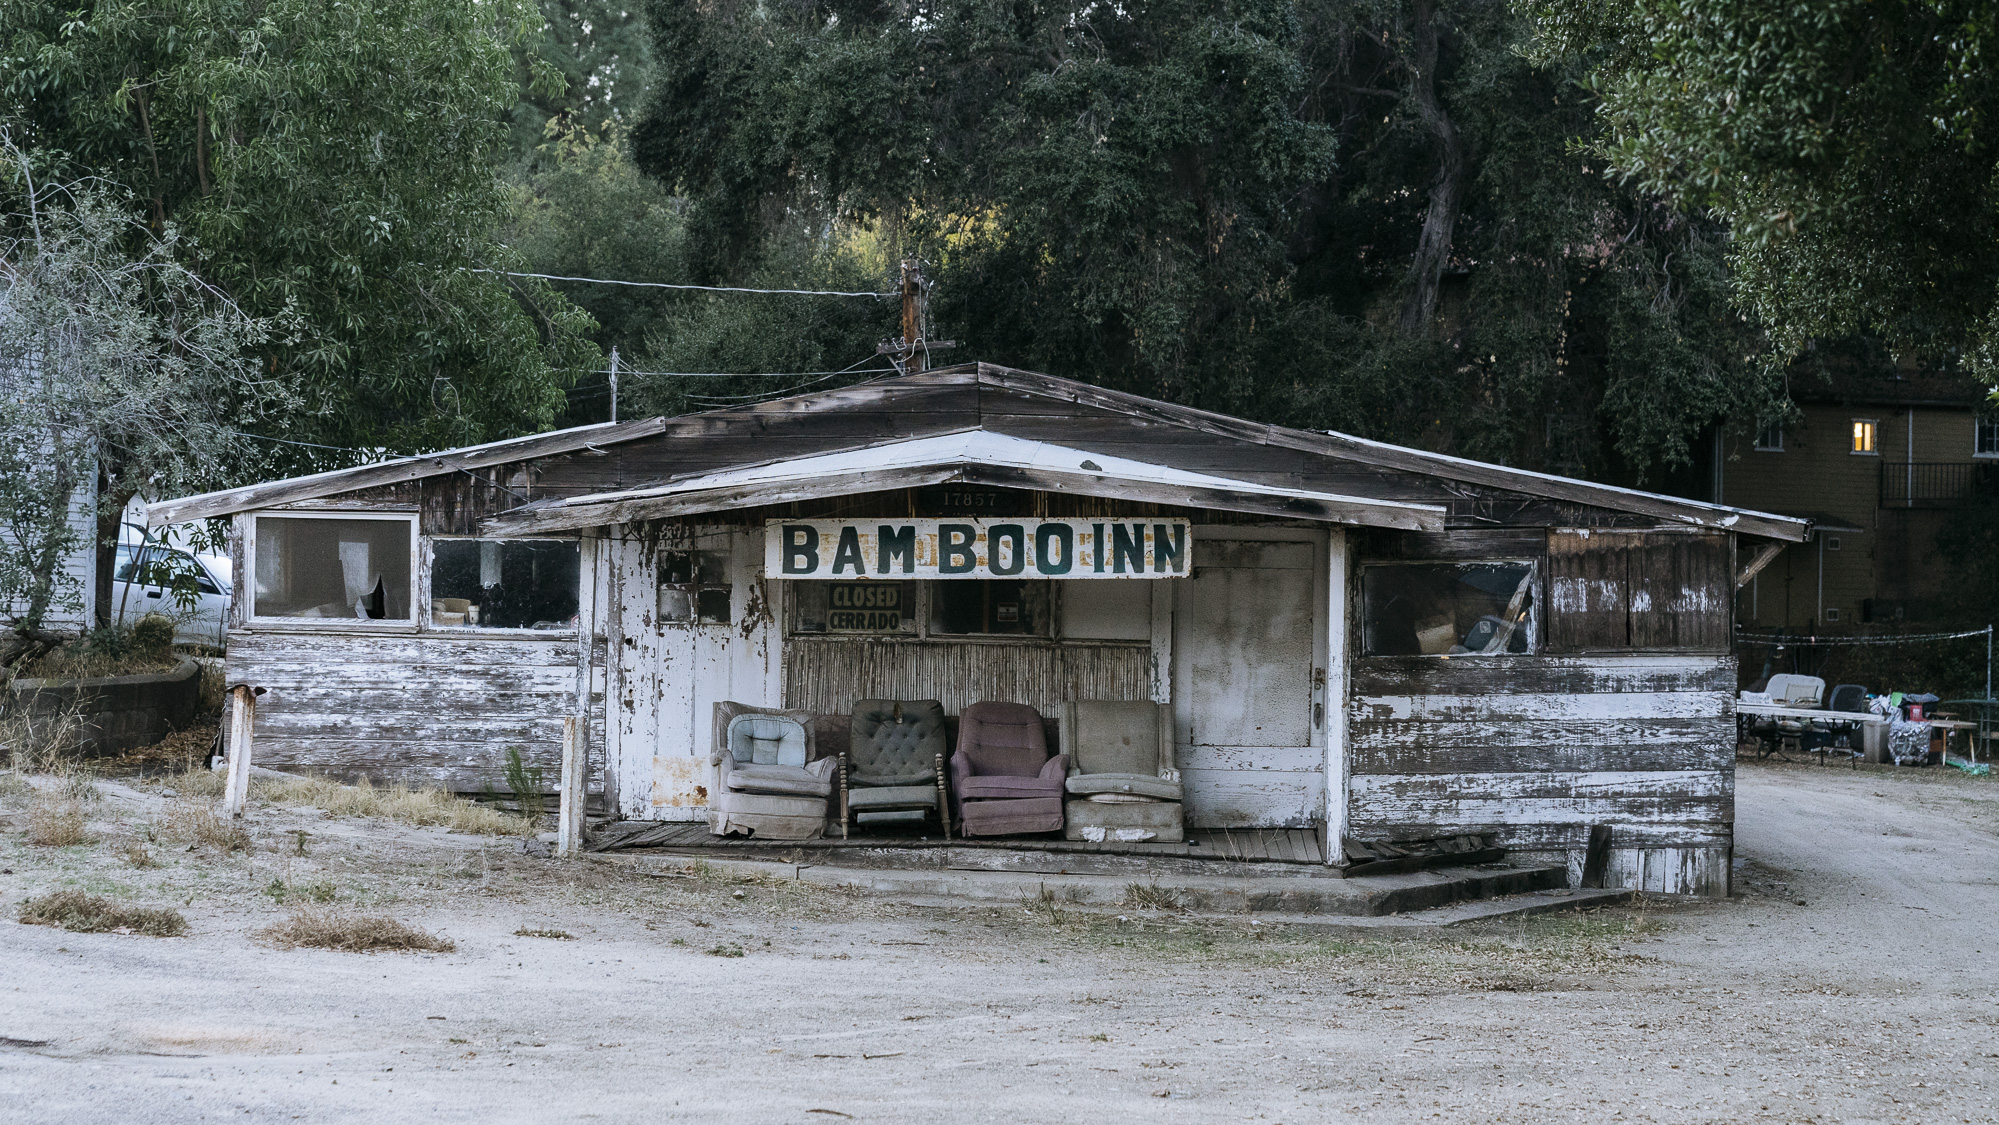 IMAGE CAPTION:  A shuttered Inn on Campo Road in  Dulzura, California. 7 miles from the border wall.